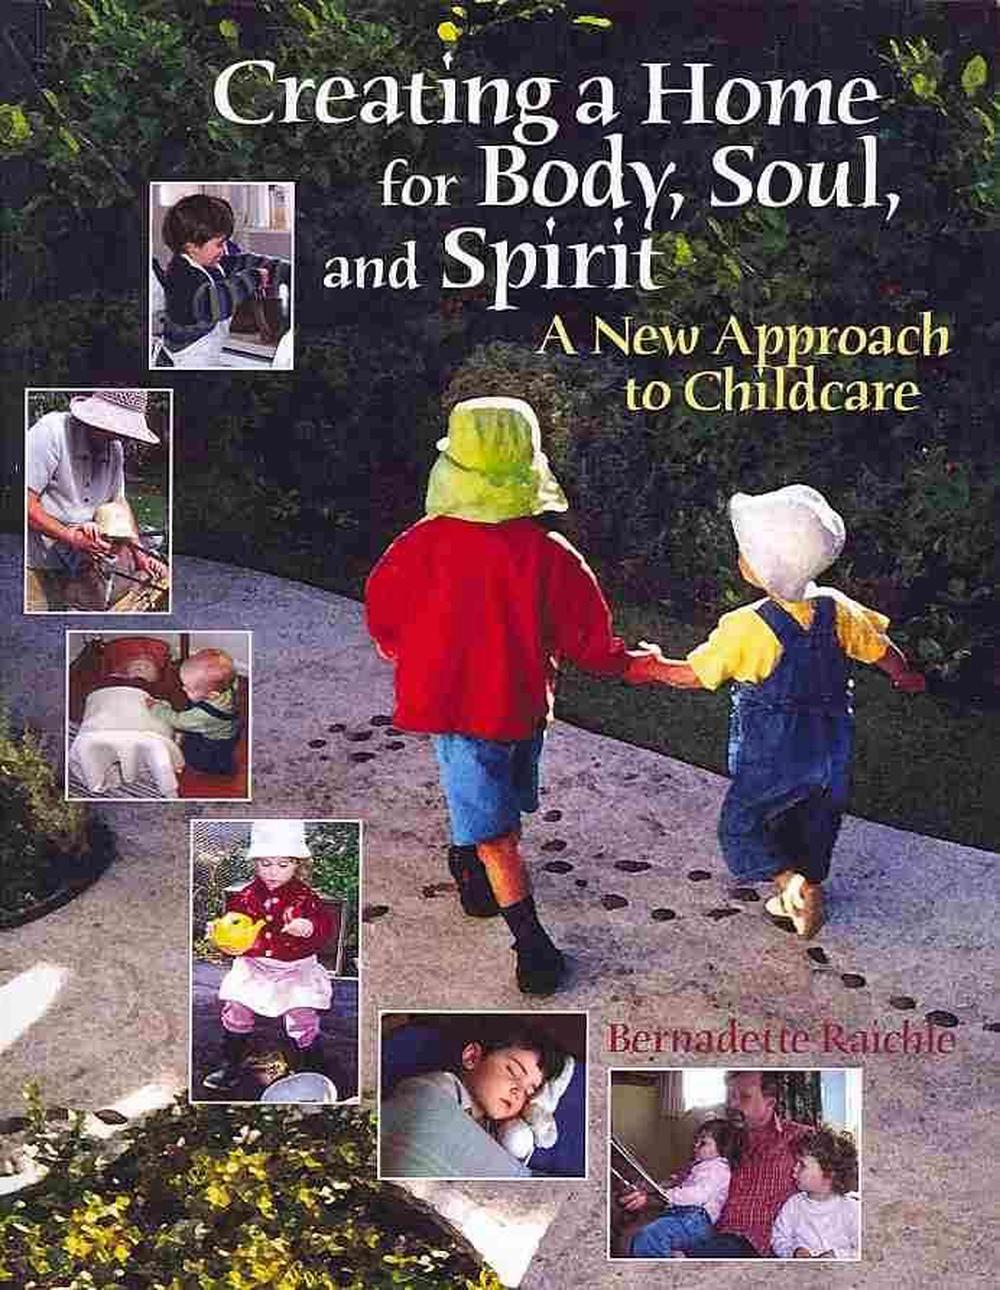 Creating a Home for Body, Soul, and Spirit by Bernadette Raichle, ISBN: 9781936849017